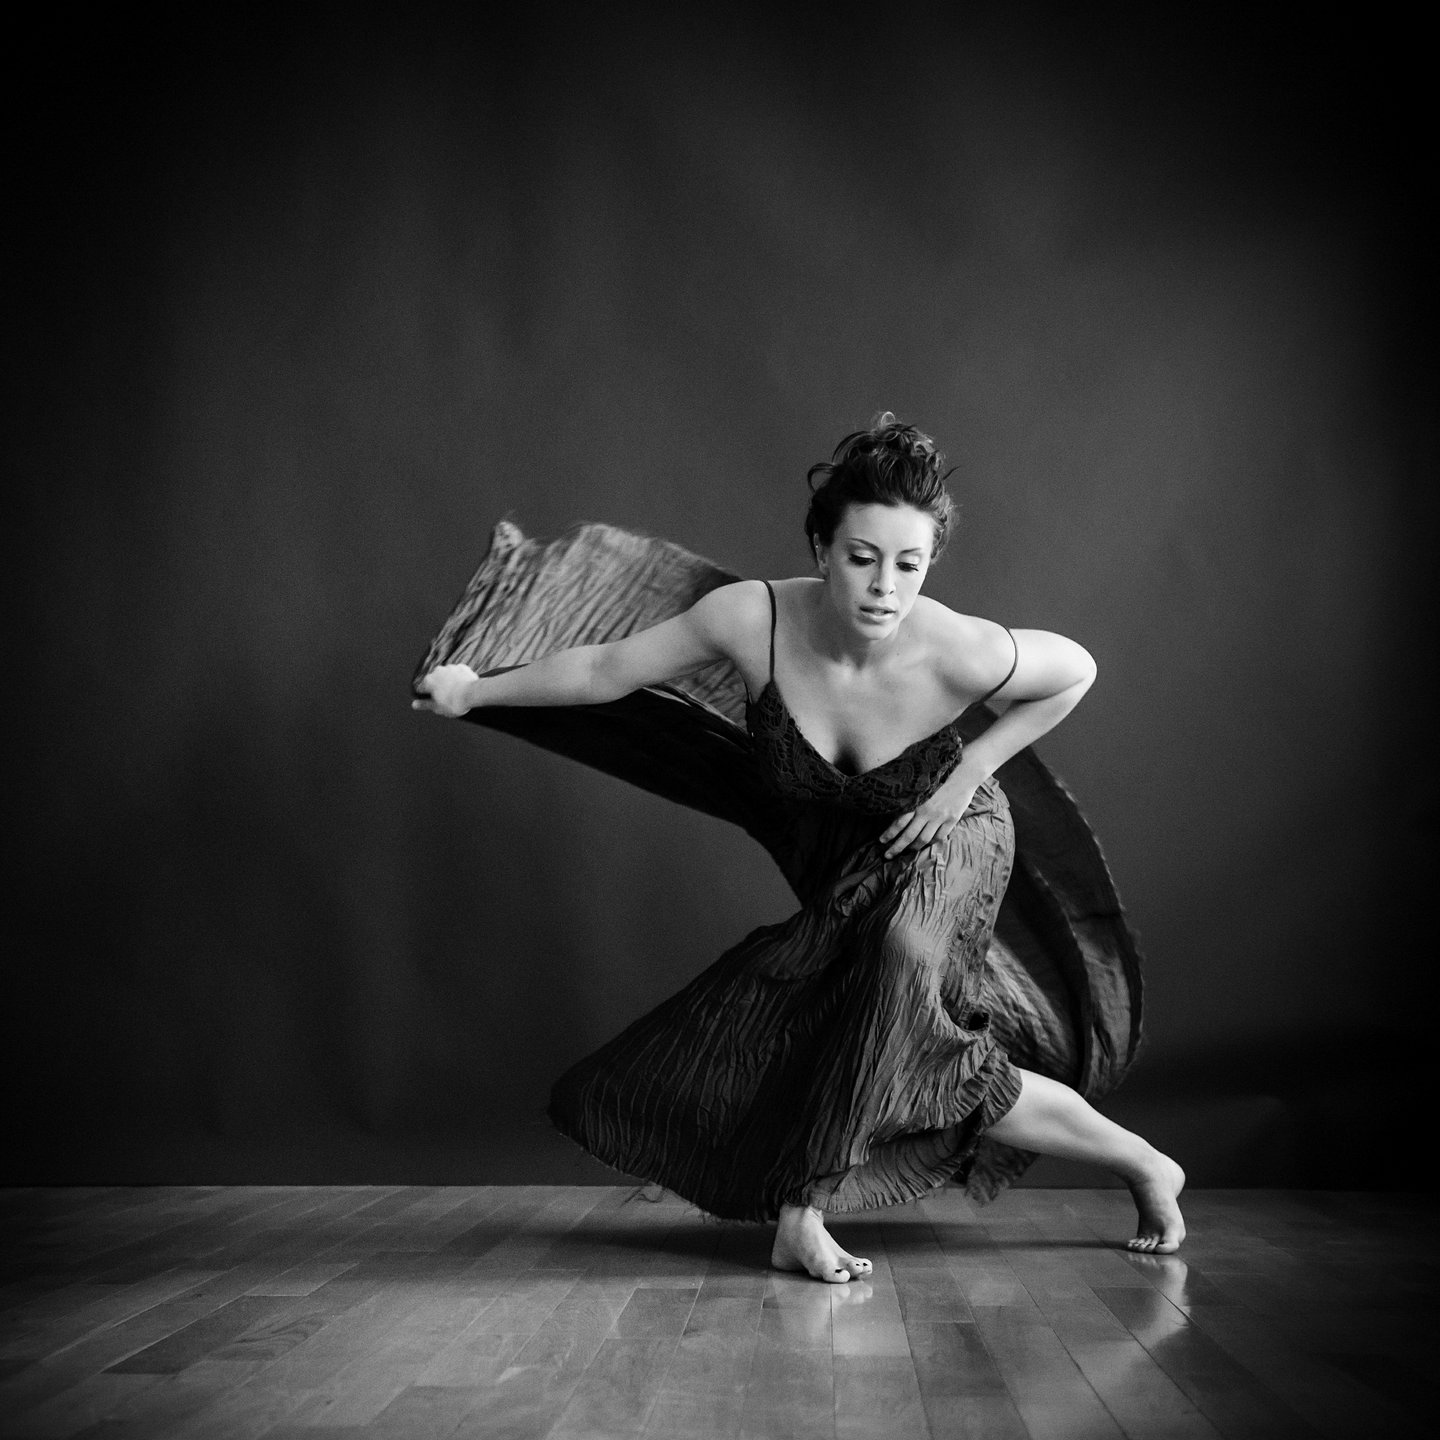 Los Angeles Dance Portrait Photo - Stephanie Abrams - by Tommy Xing Photography 21.jpg